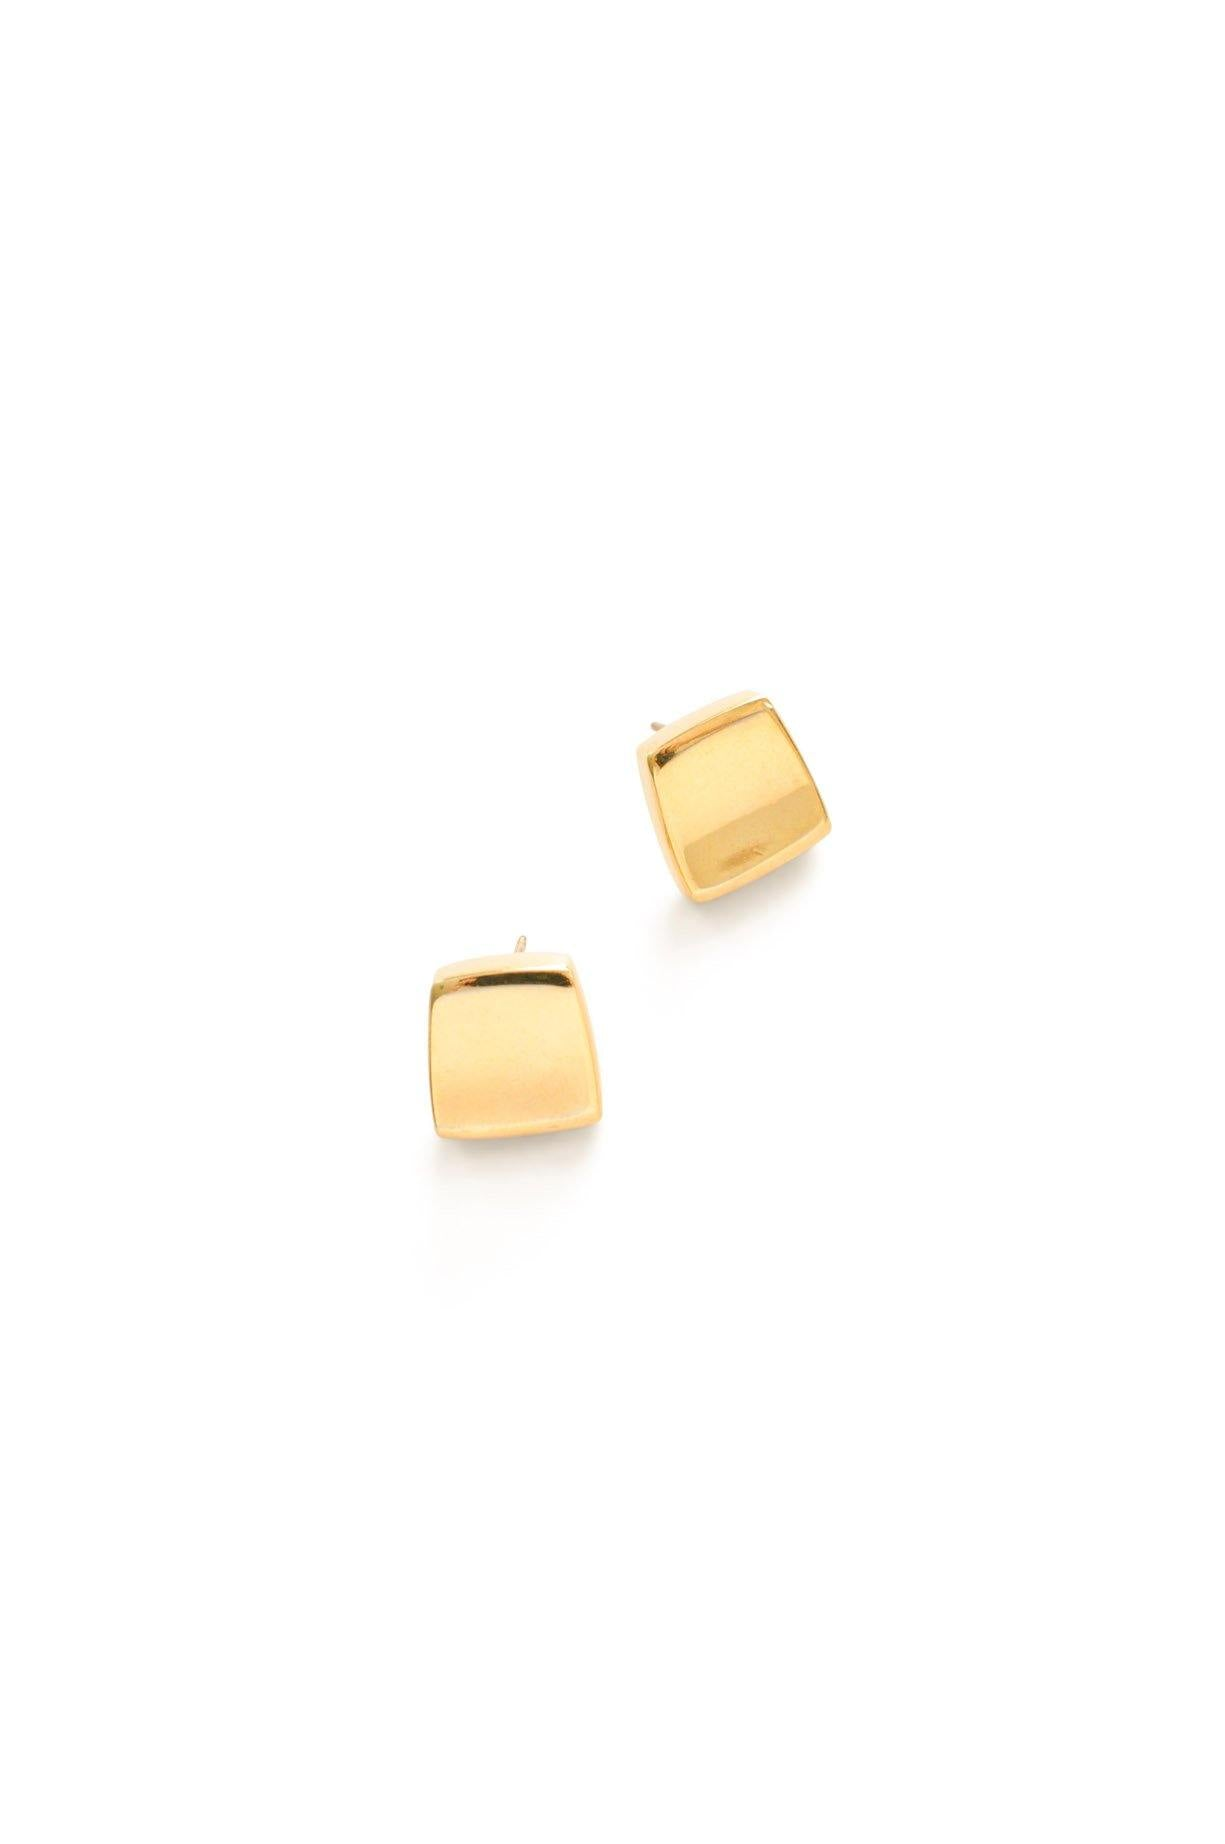 Gold Squares Pierced Earrings from Sweet & Spark